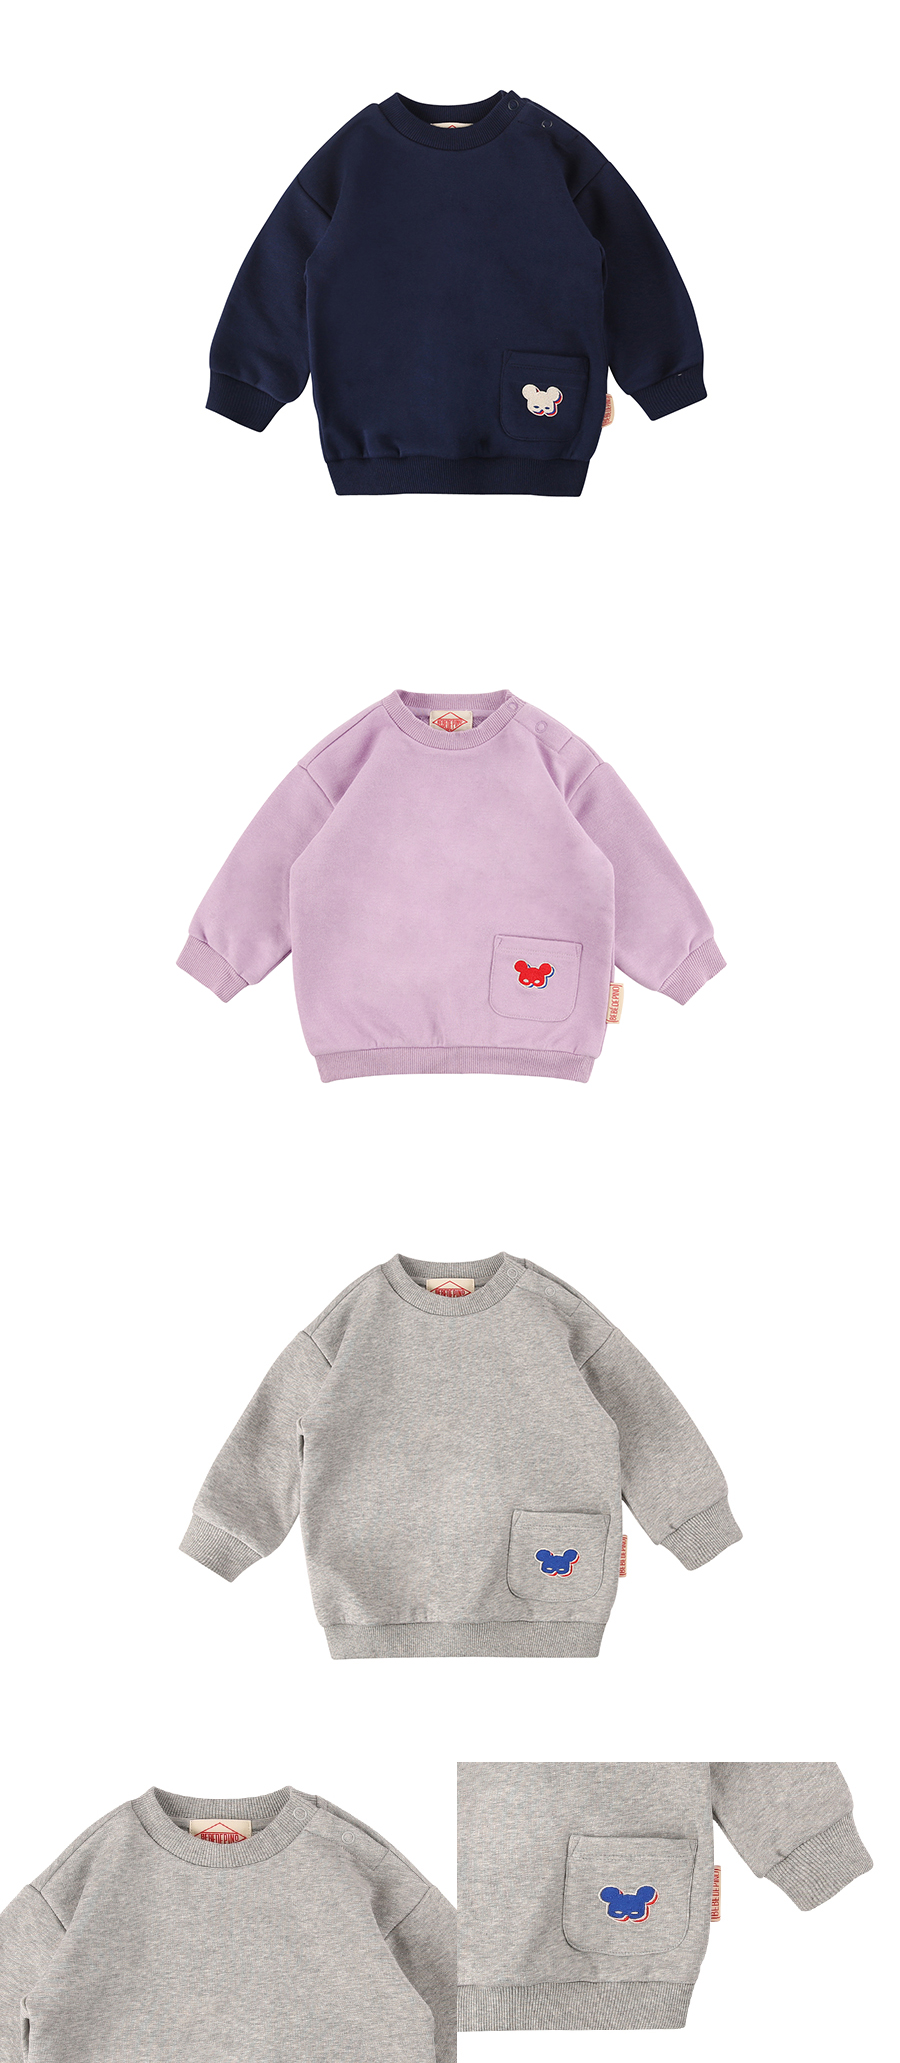 Basic baby shadow pino sweatshirt 상세 이미지